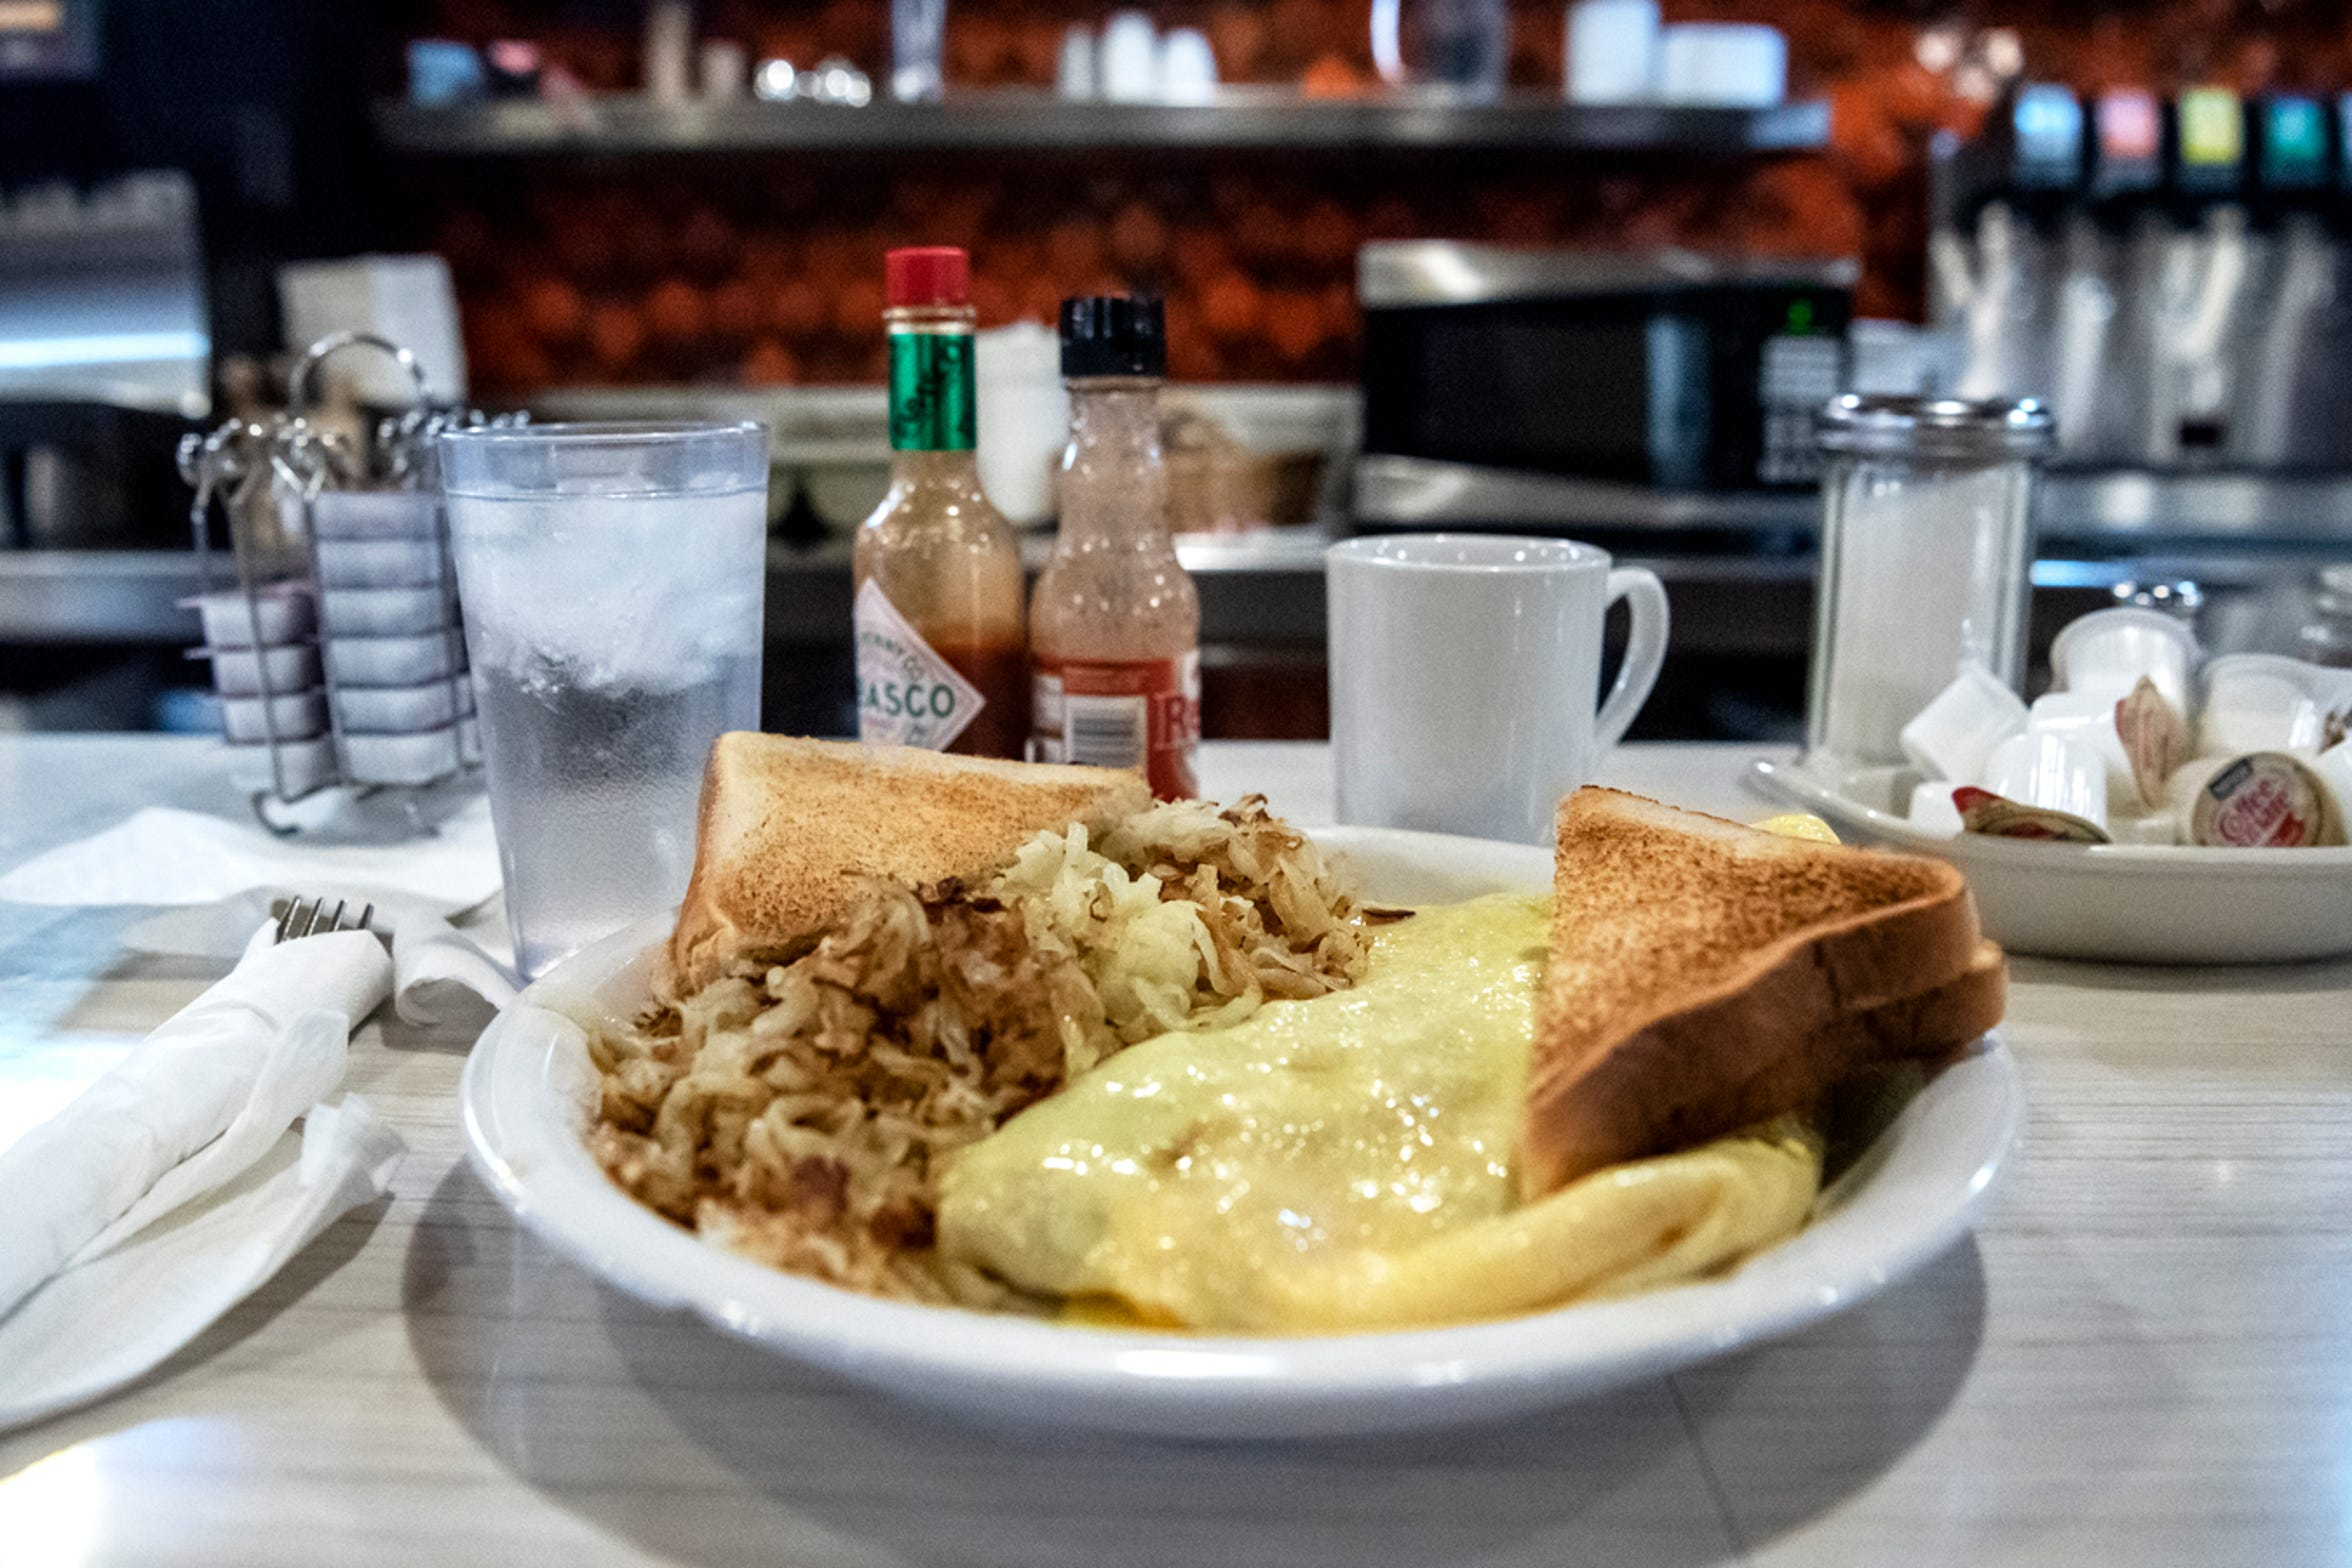 Breakfast food is pictured on Wednesday, Nov. 20, 2019 at Speed's Koffee Shop in Battle Creek, Mich.